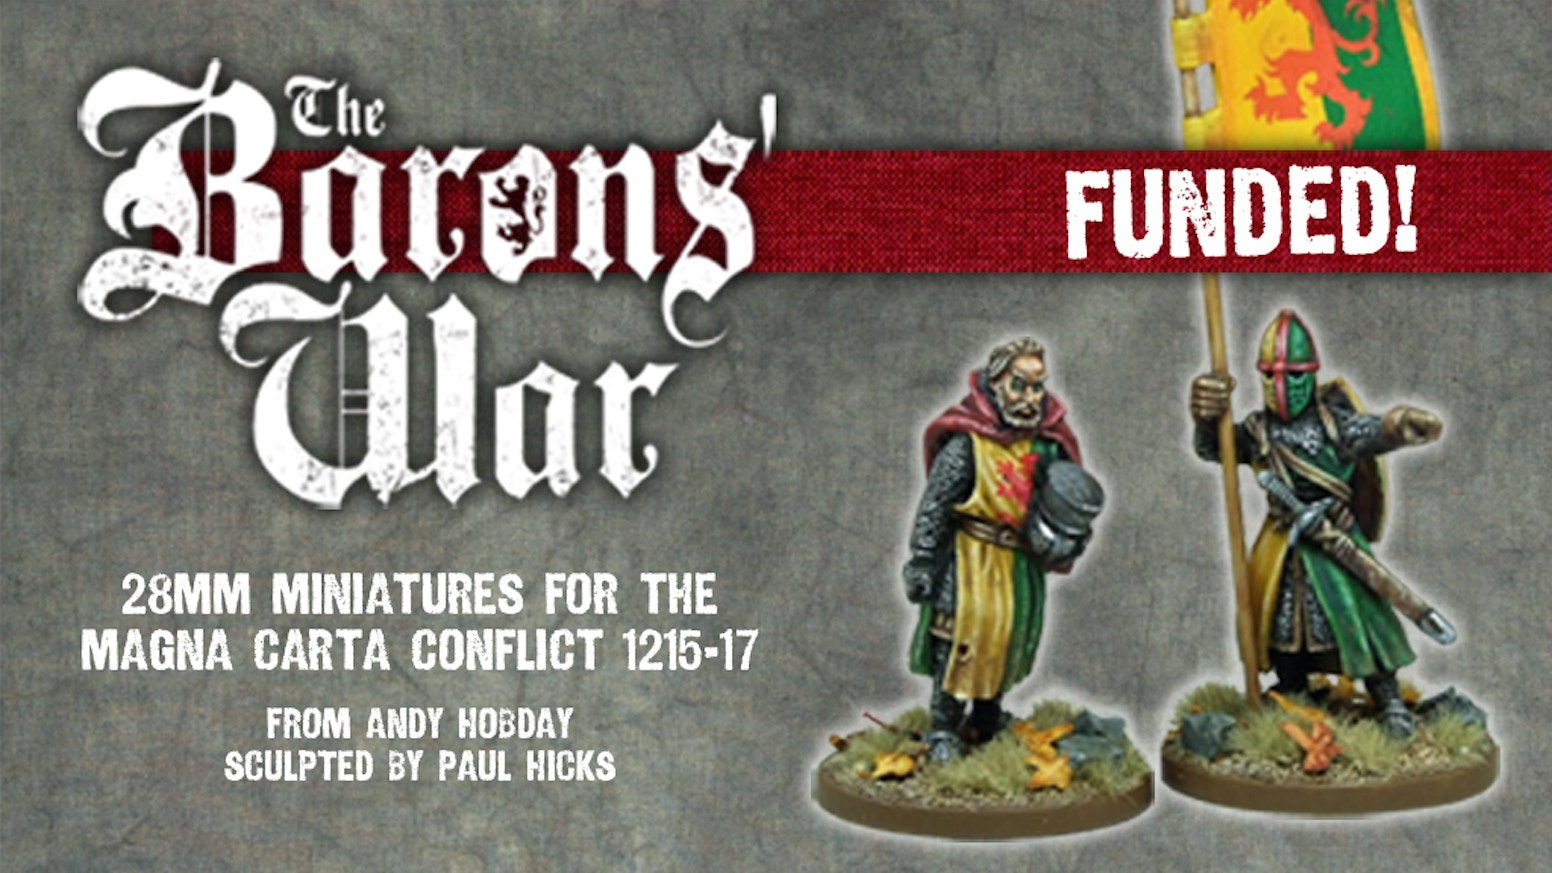 New, highly-detailed, 28mm miniatures usable for both sides of the Magna Carta conflict of 1215 - 1217.